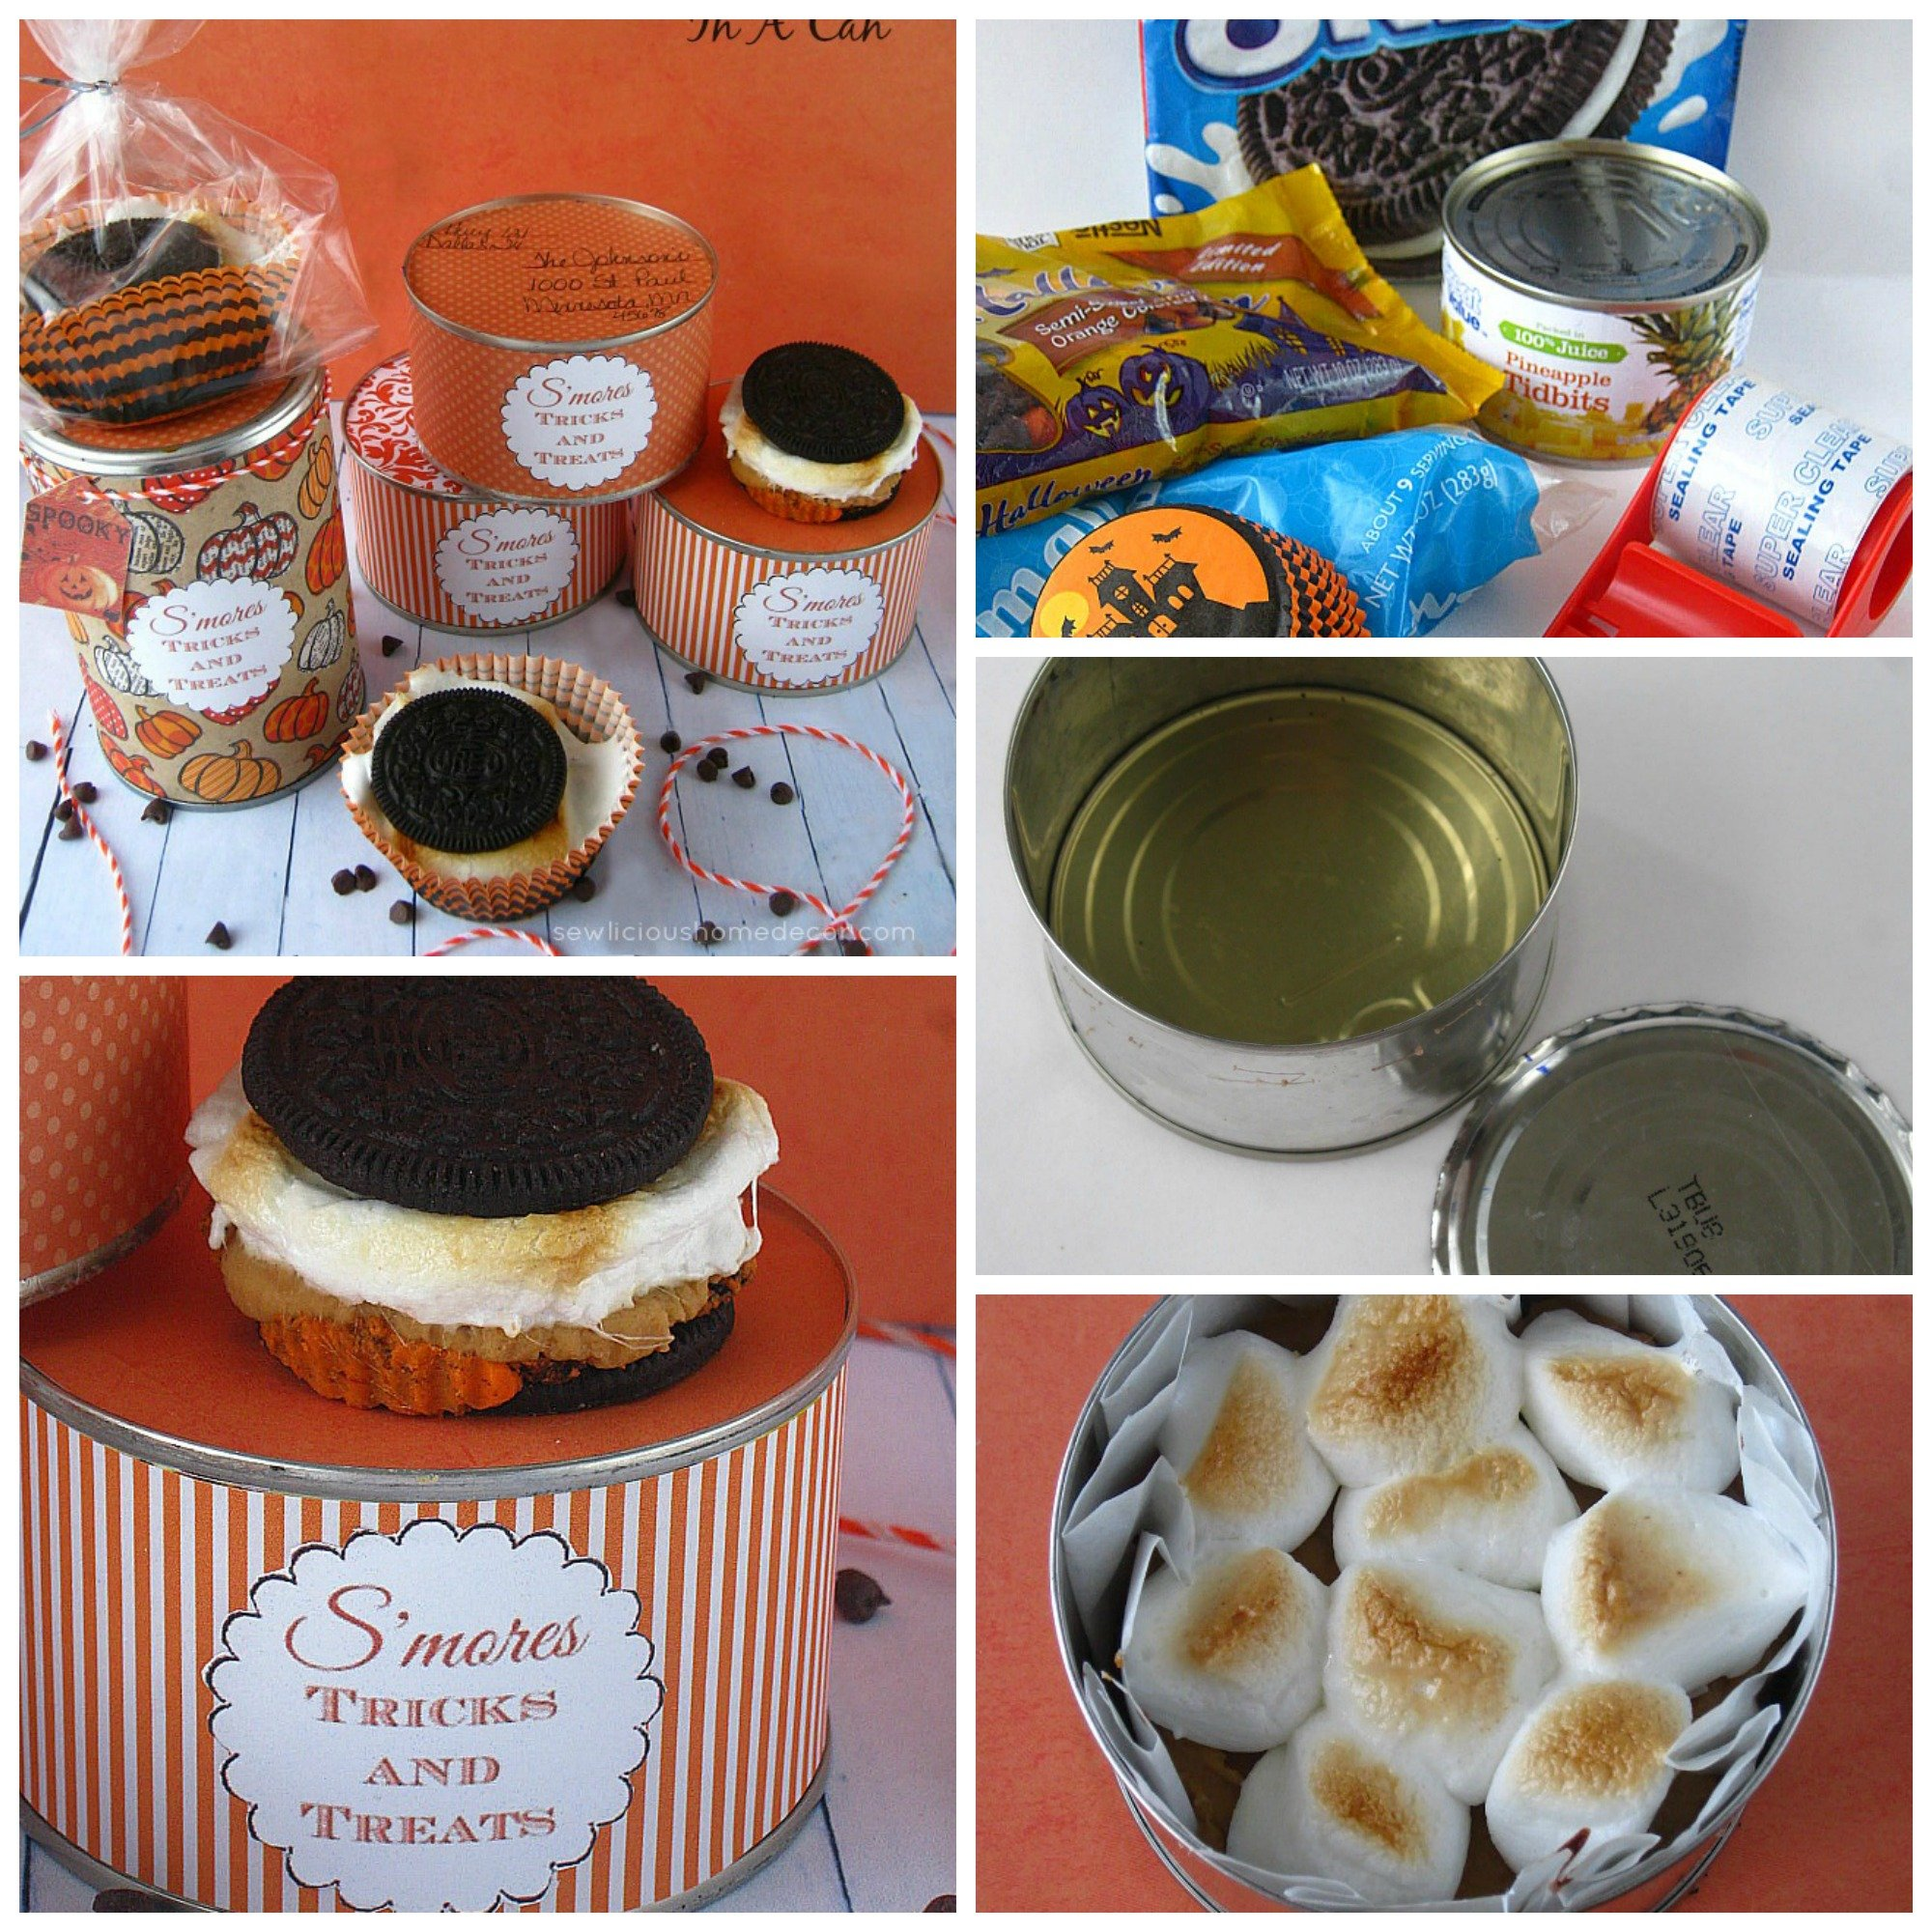 Halloween Smores Kits in a Can